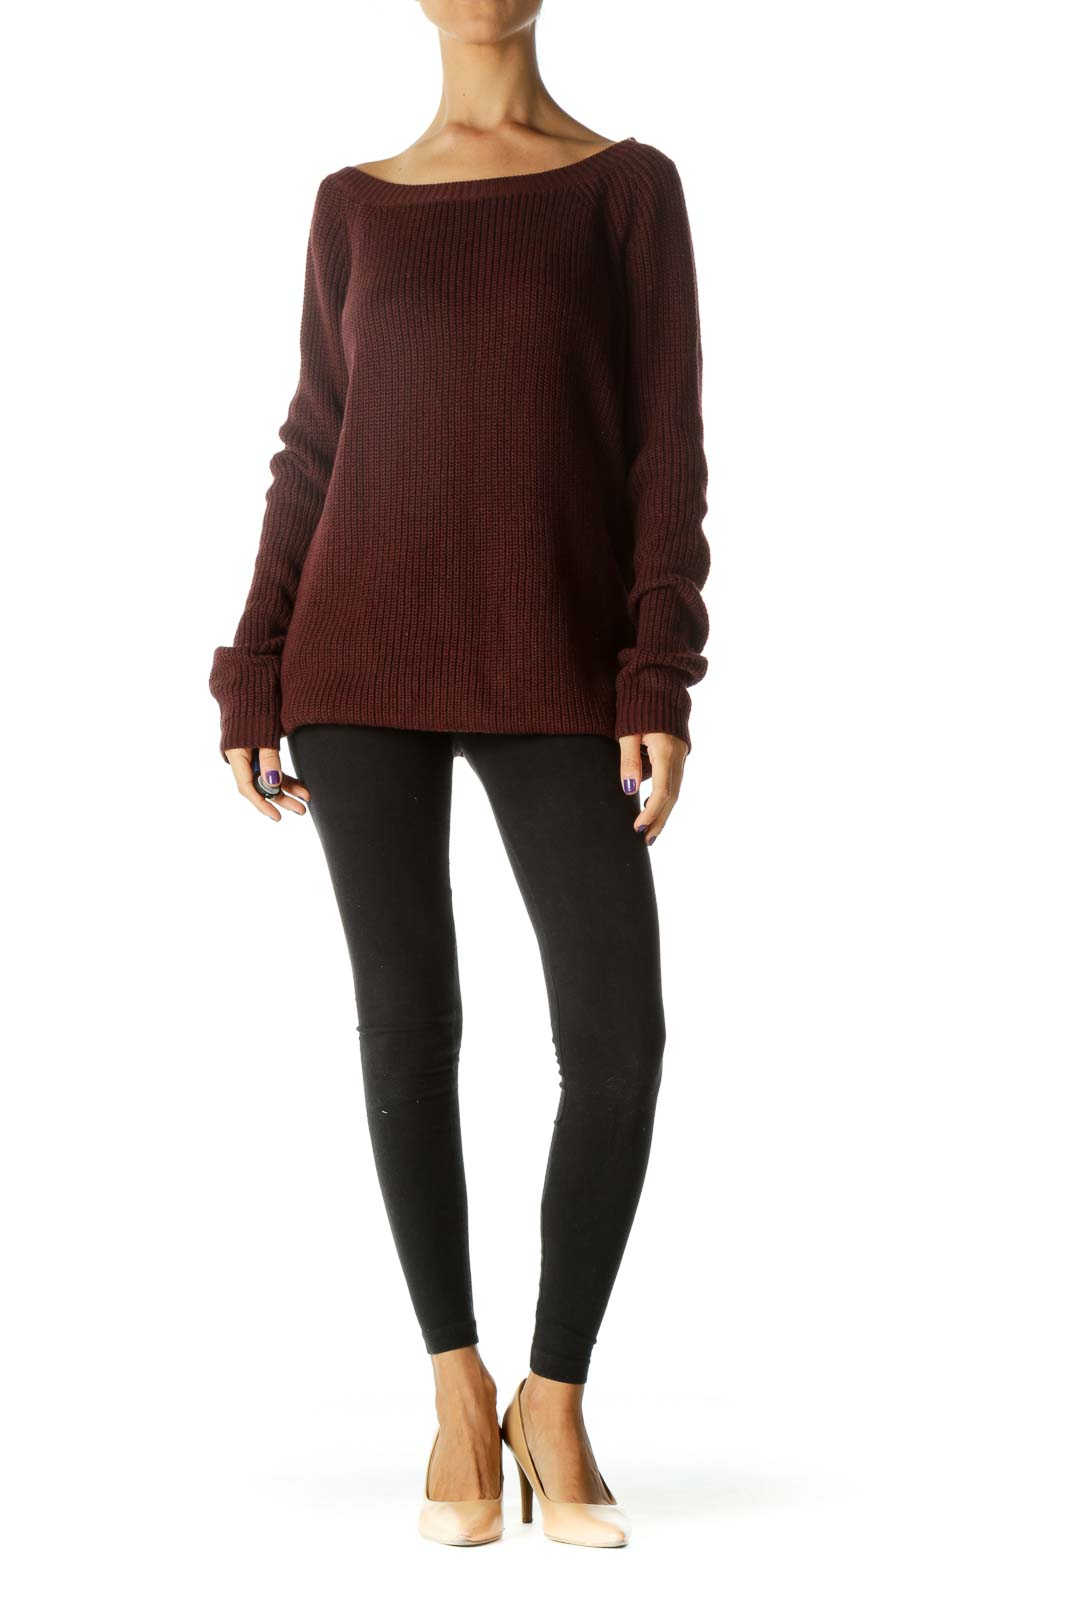 Burgundy Knitted Back V-Neck Stretch Sweater